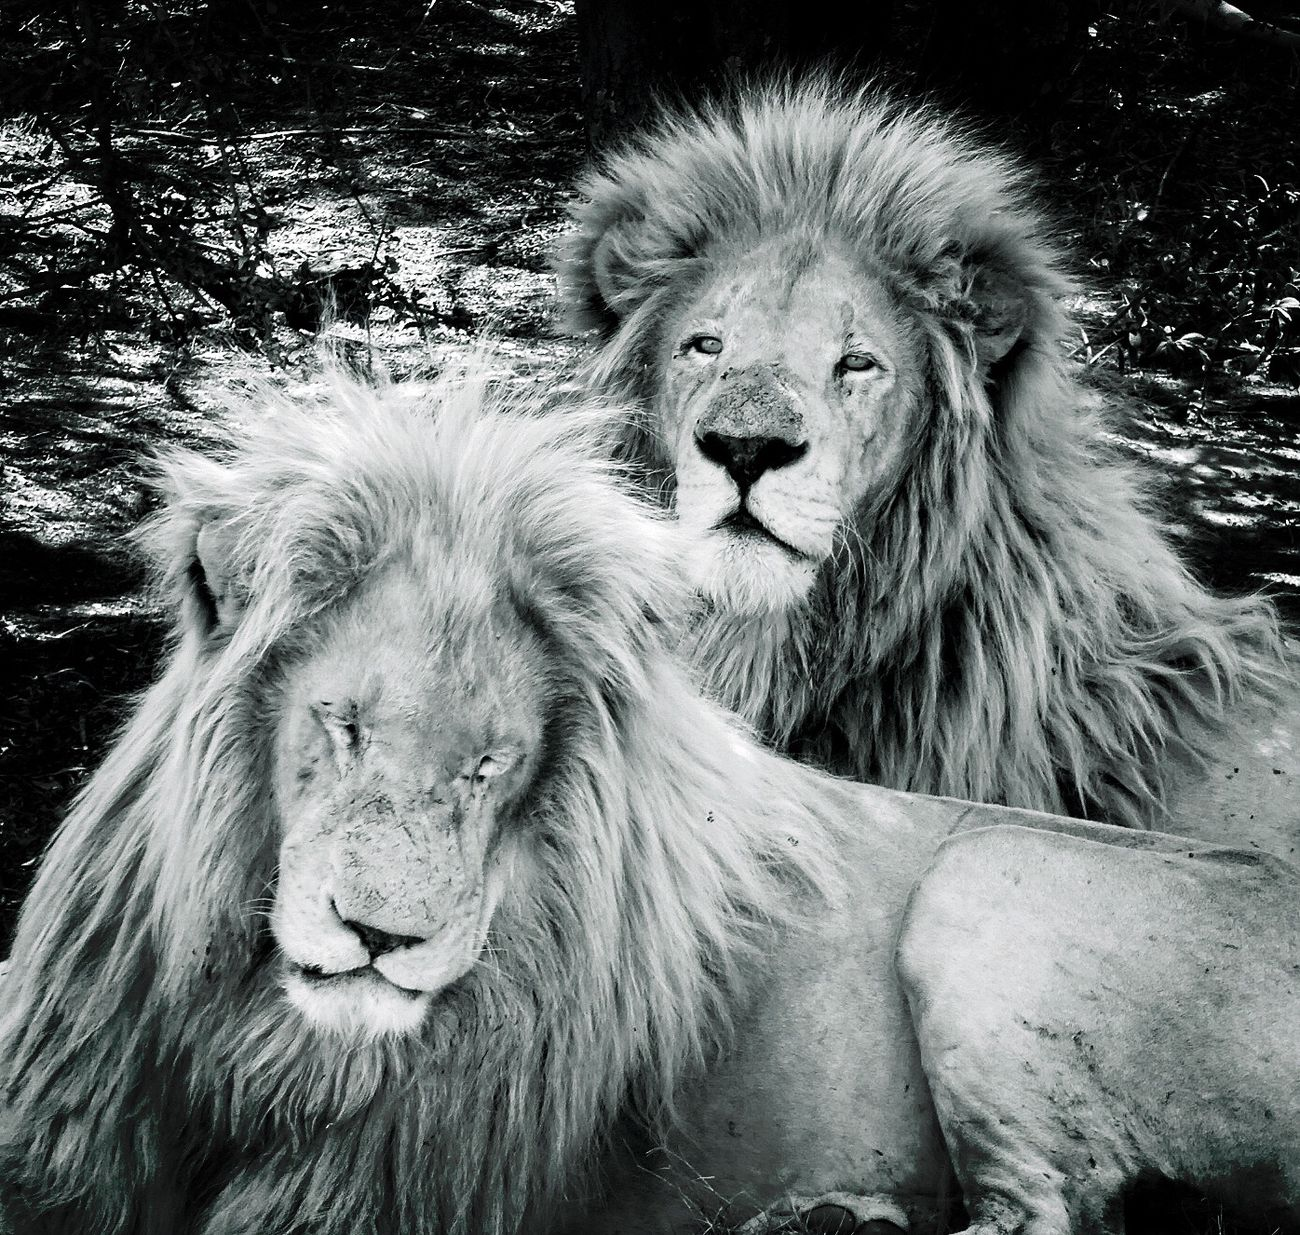 Lions Kingofthejungle King Of The Jungle Beast Animal_collection Animal Photography Wildlife & Nature EyeEm Best Shots - Black + White Portrait Black And White Light And Shadow Shades Of Grey Nature_collection EyeEm Nature Lover Nature